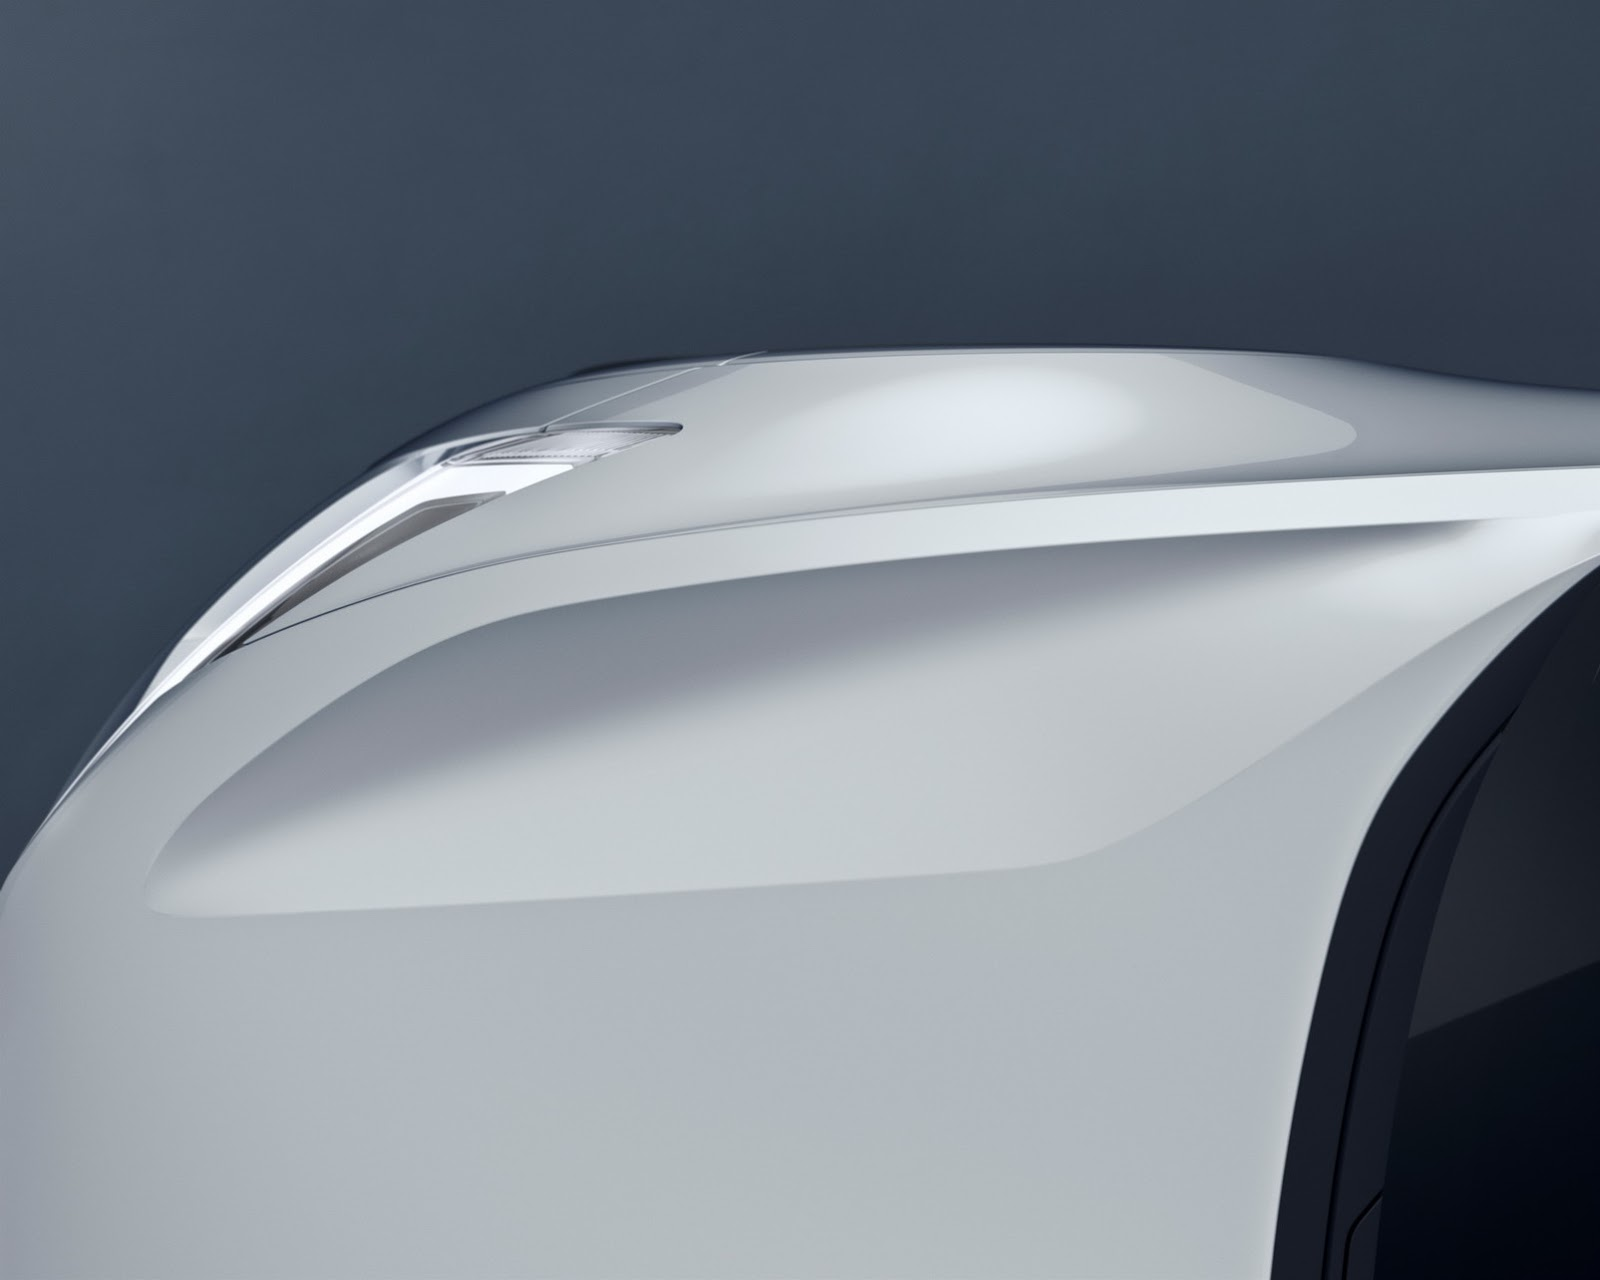 Lexus lf gh concept 2011 exterior detail 49 of 49 1600x1200 - Andoniscars